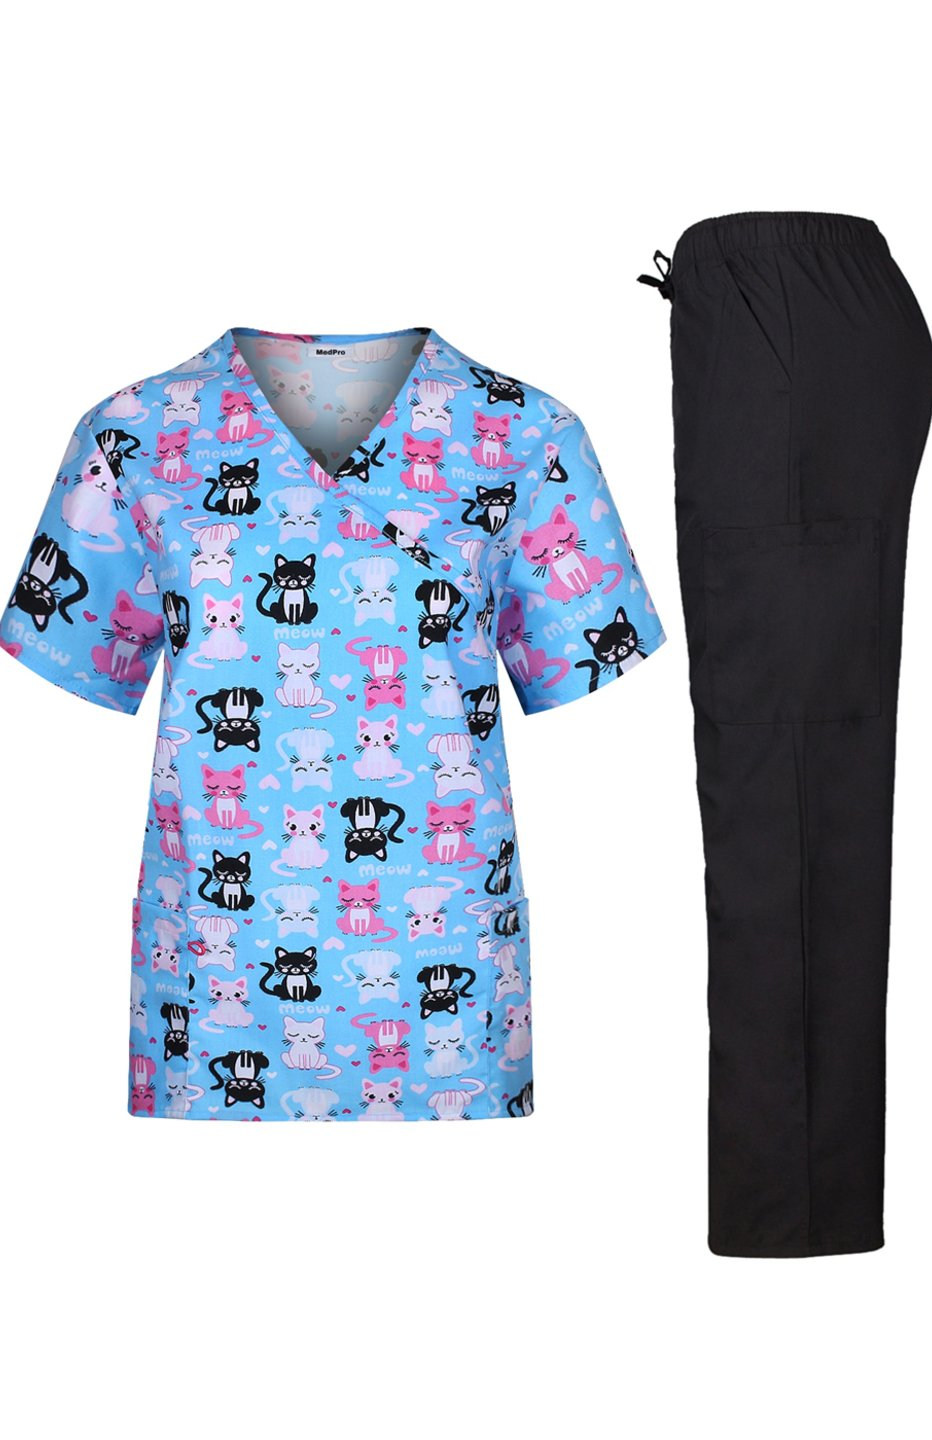 MedPro Women's Medical Scrub Set Cat Print Wrap Top and Cargo Pants  Blue Pink L